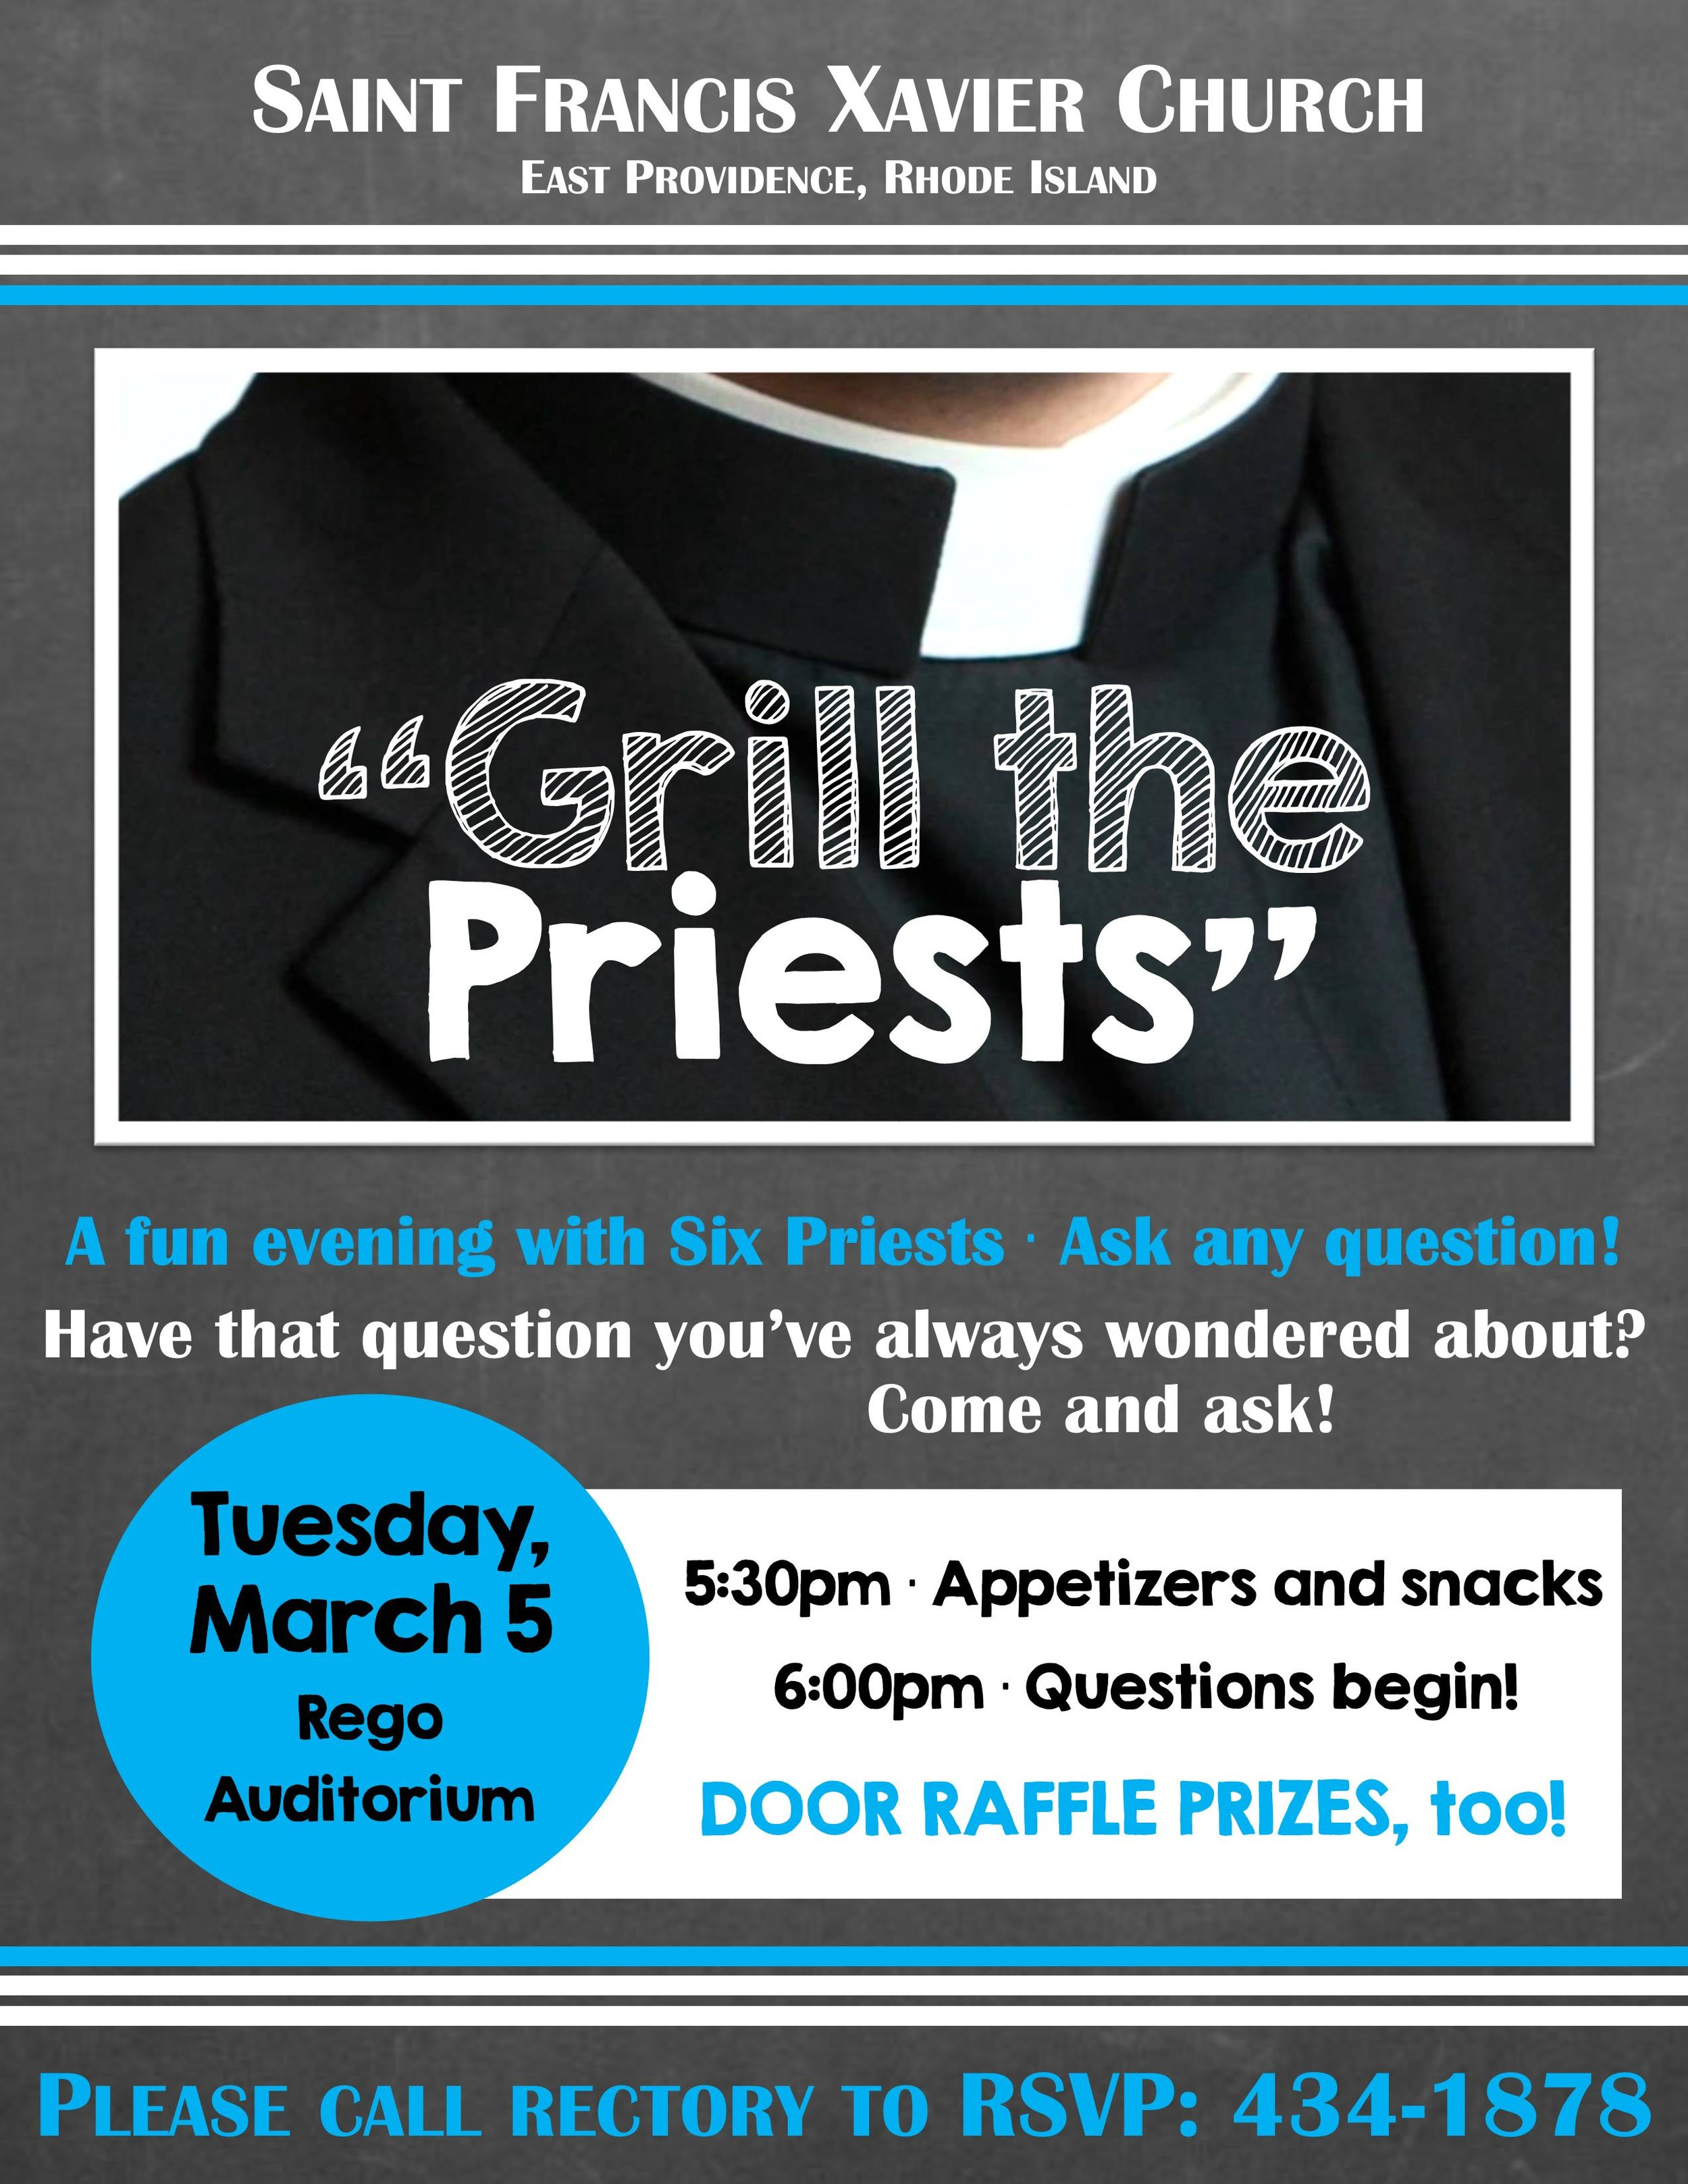 grill the priest picture.jpg